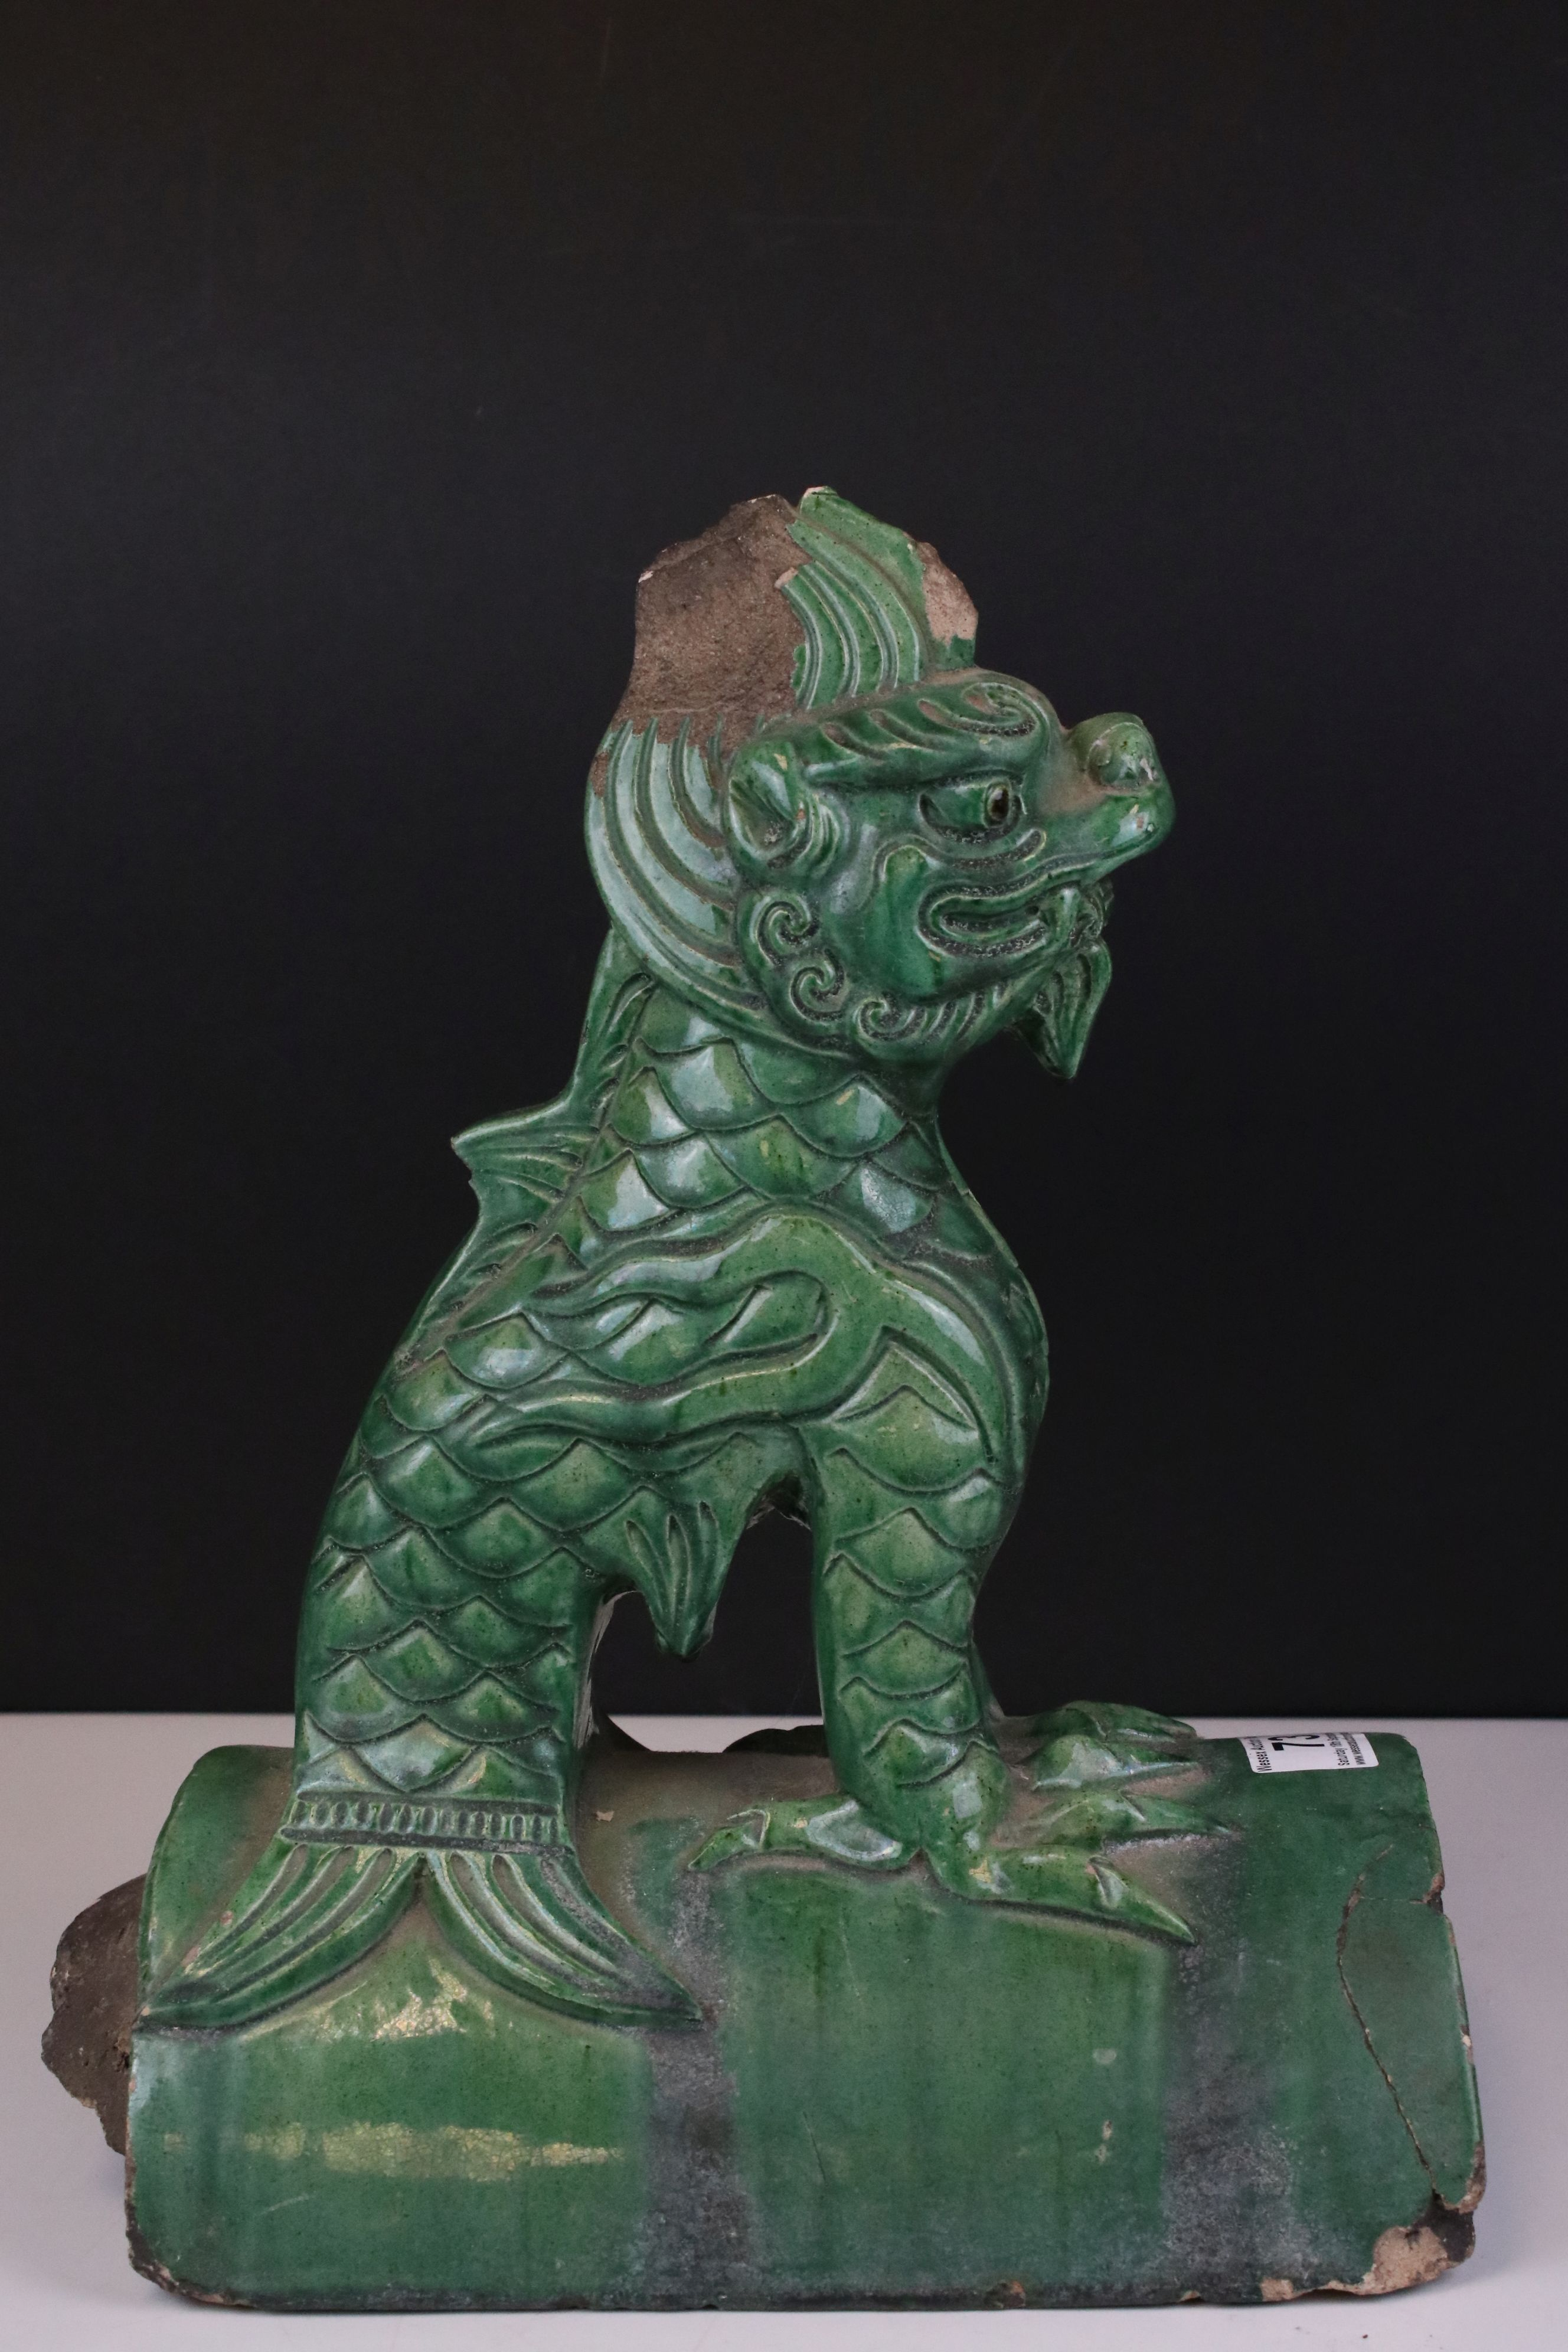 Chinese Green Glazed Pottery Roof Ridge Tile surmounted by a Mythical Creature, 34cms high - Image 2 of 6